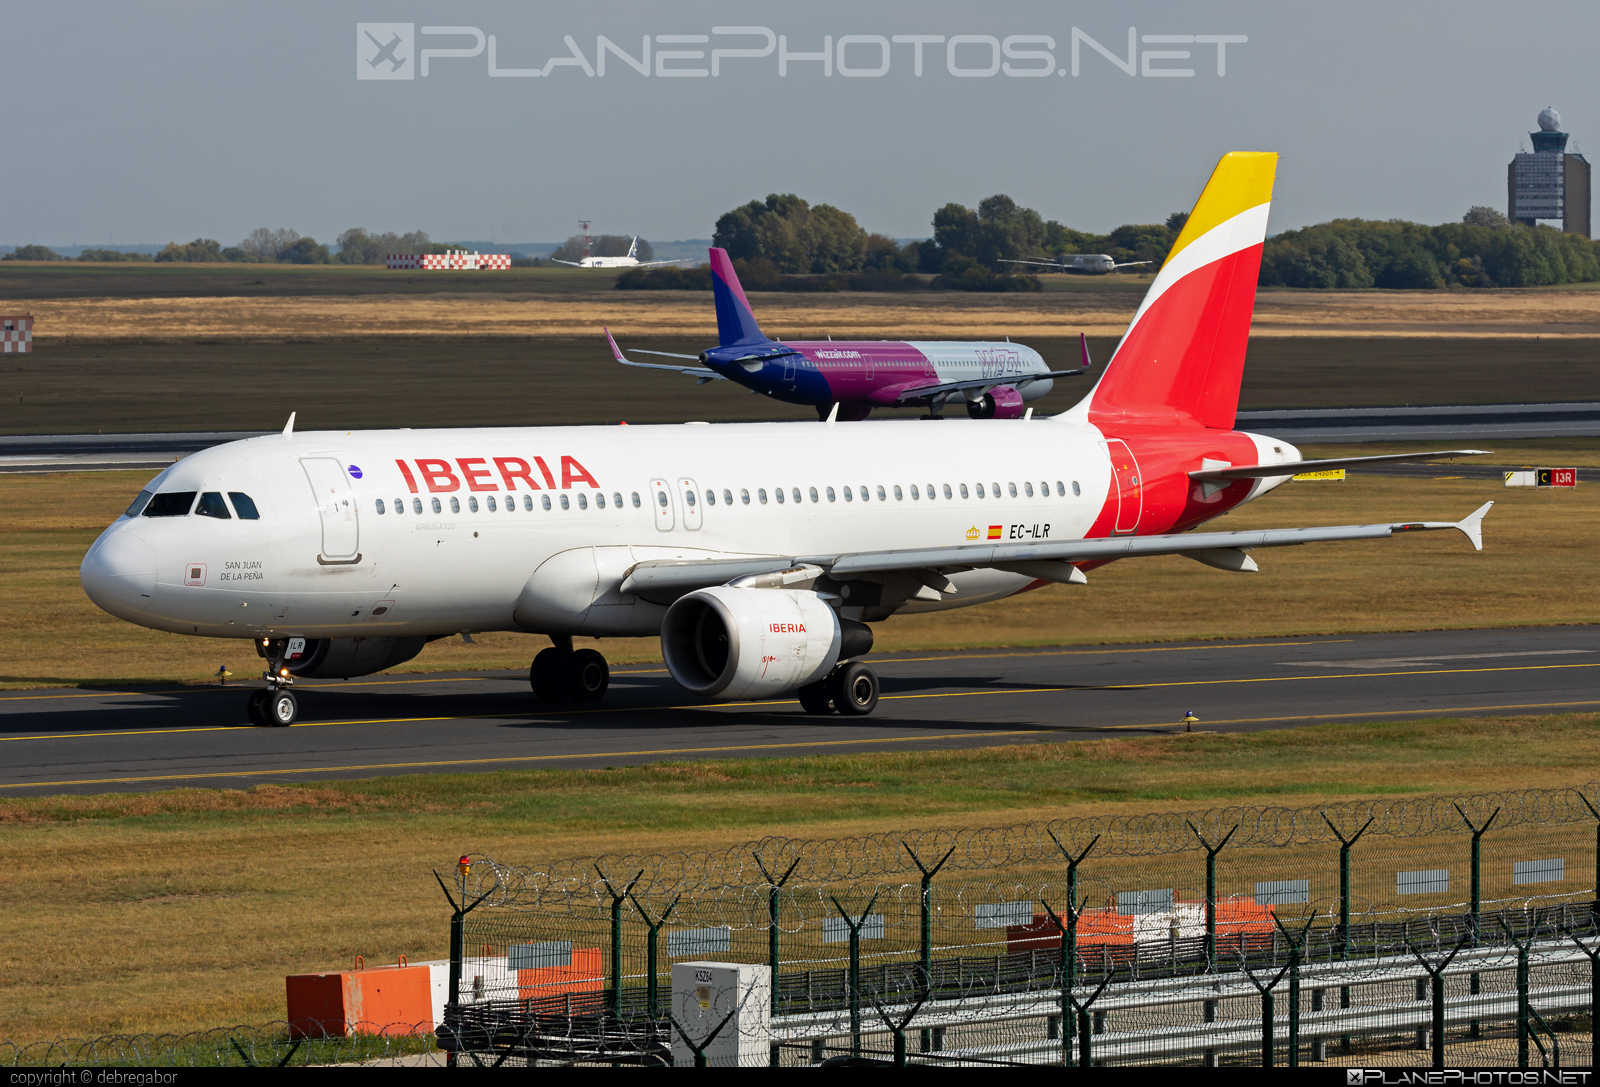 Airbus A320-214 - EC-ILR operated by Iberia #a320 #a320family #airbus #airbus320 #iberia